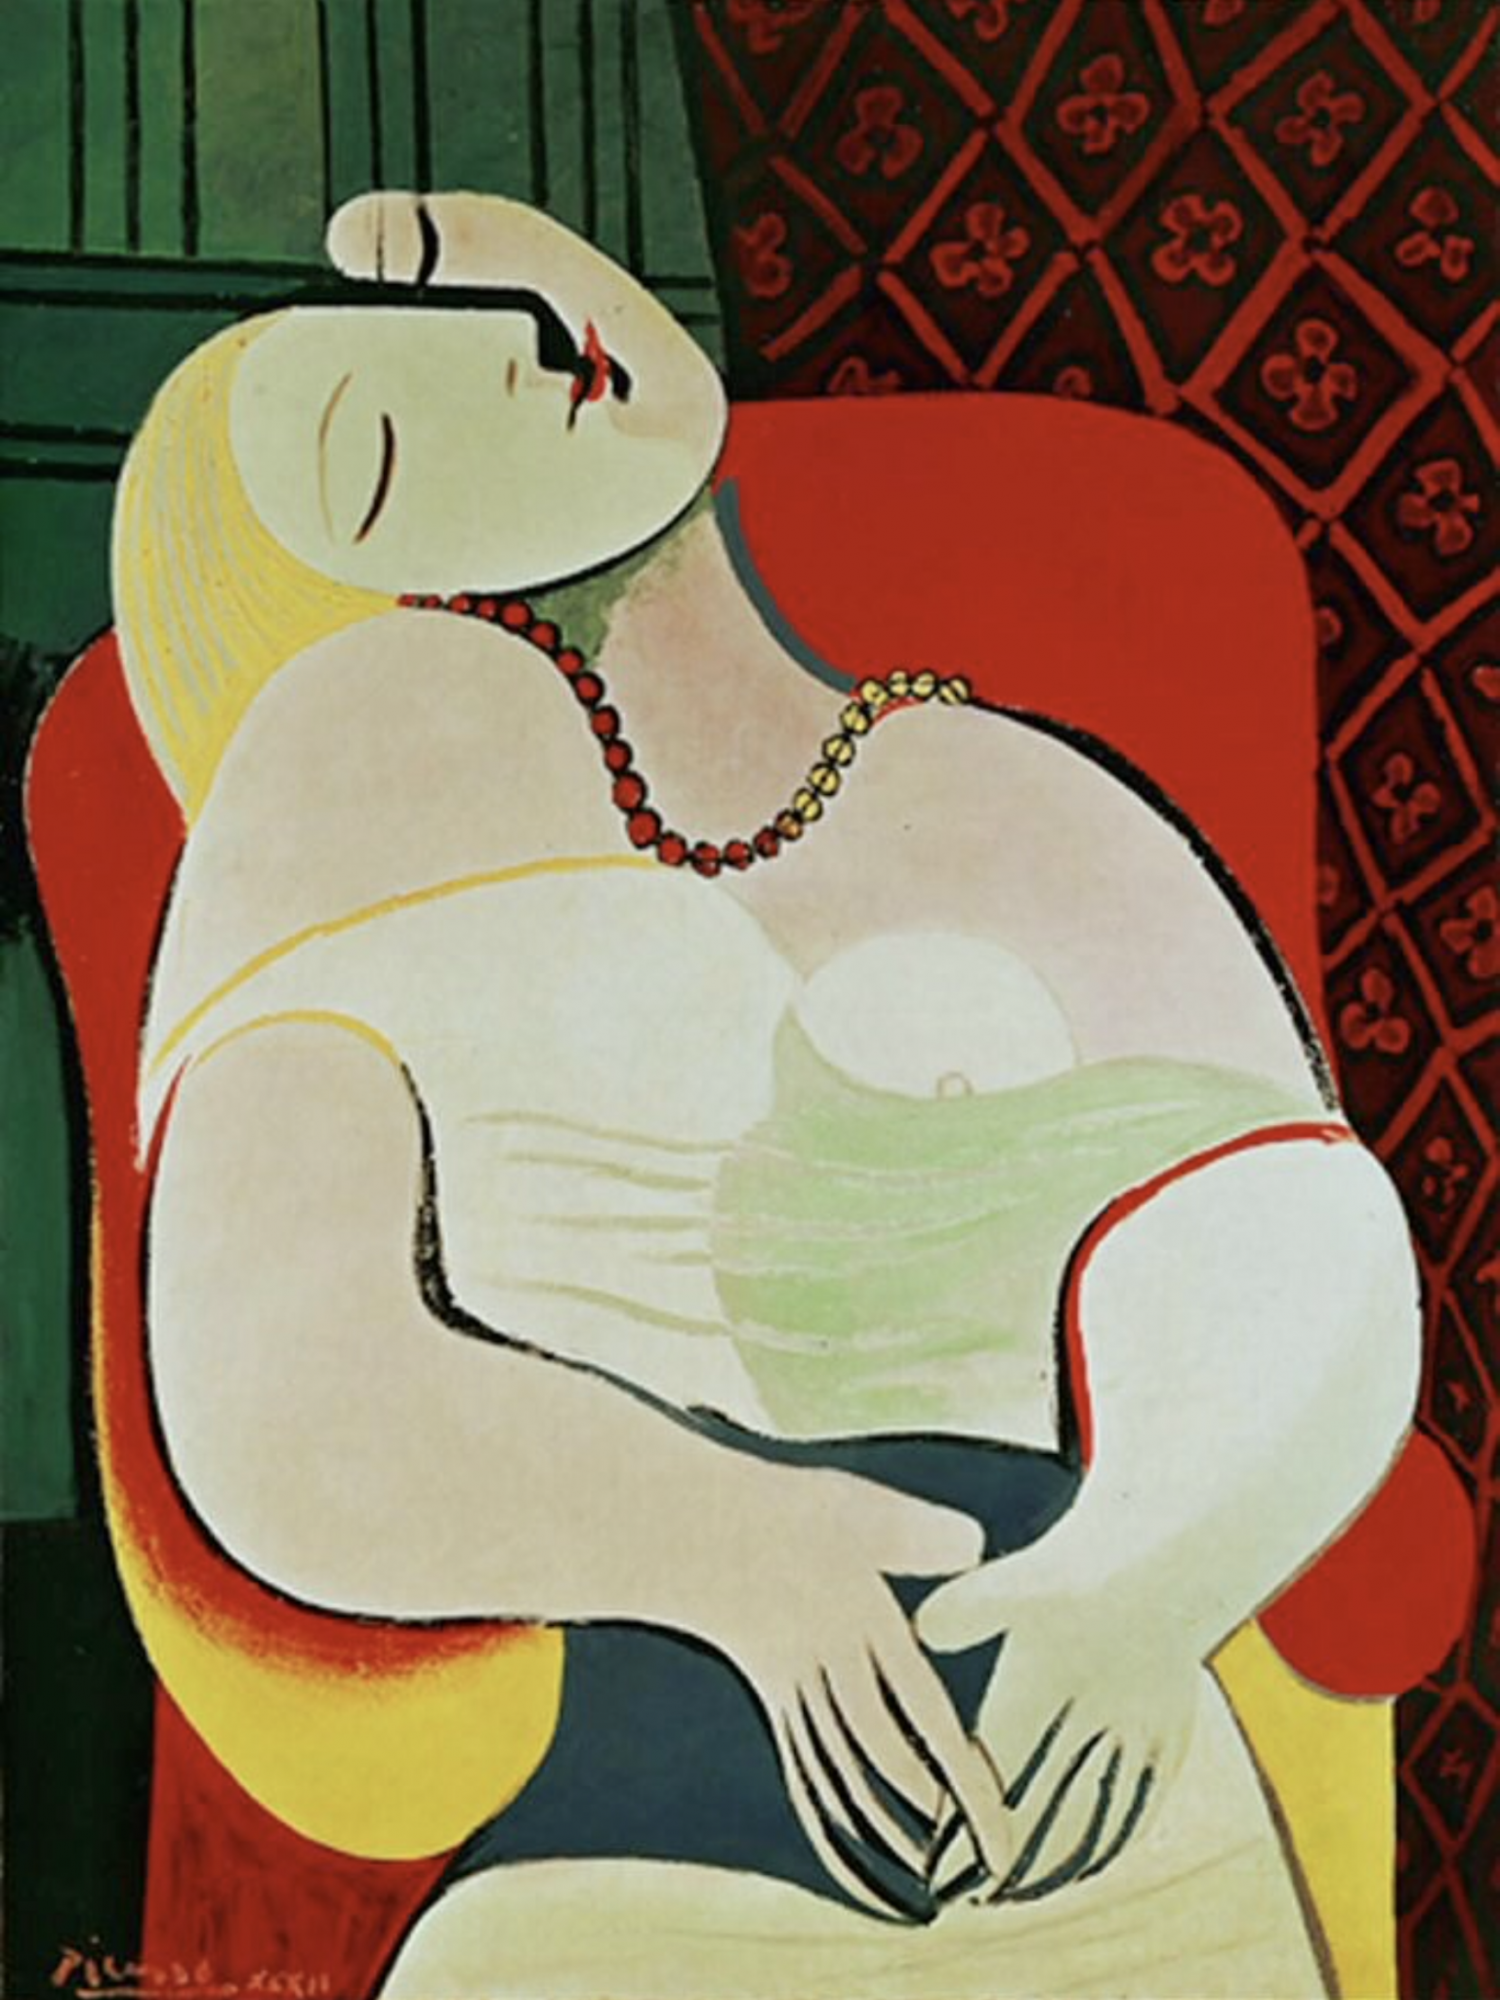 Picasso woman, red chair against green background